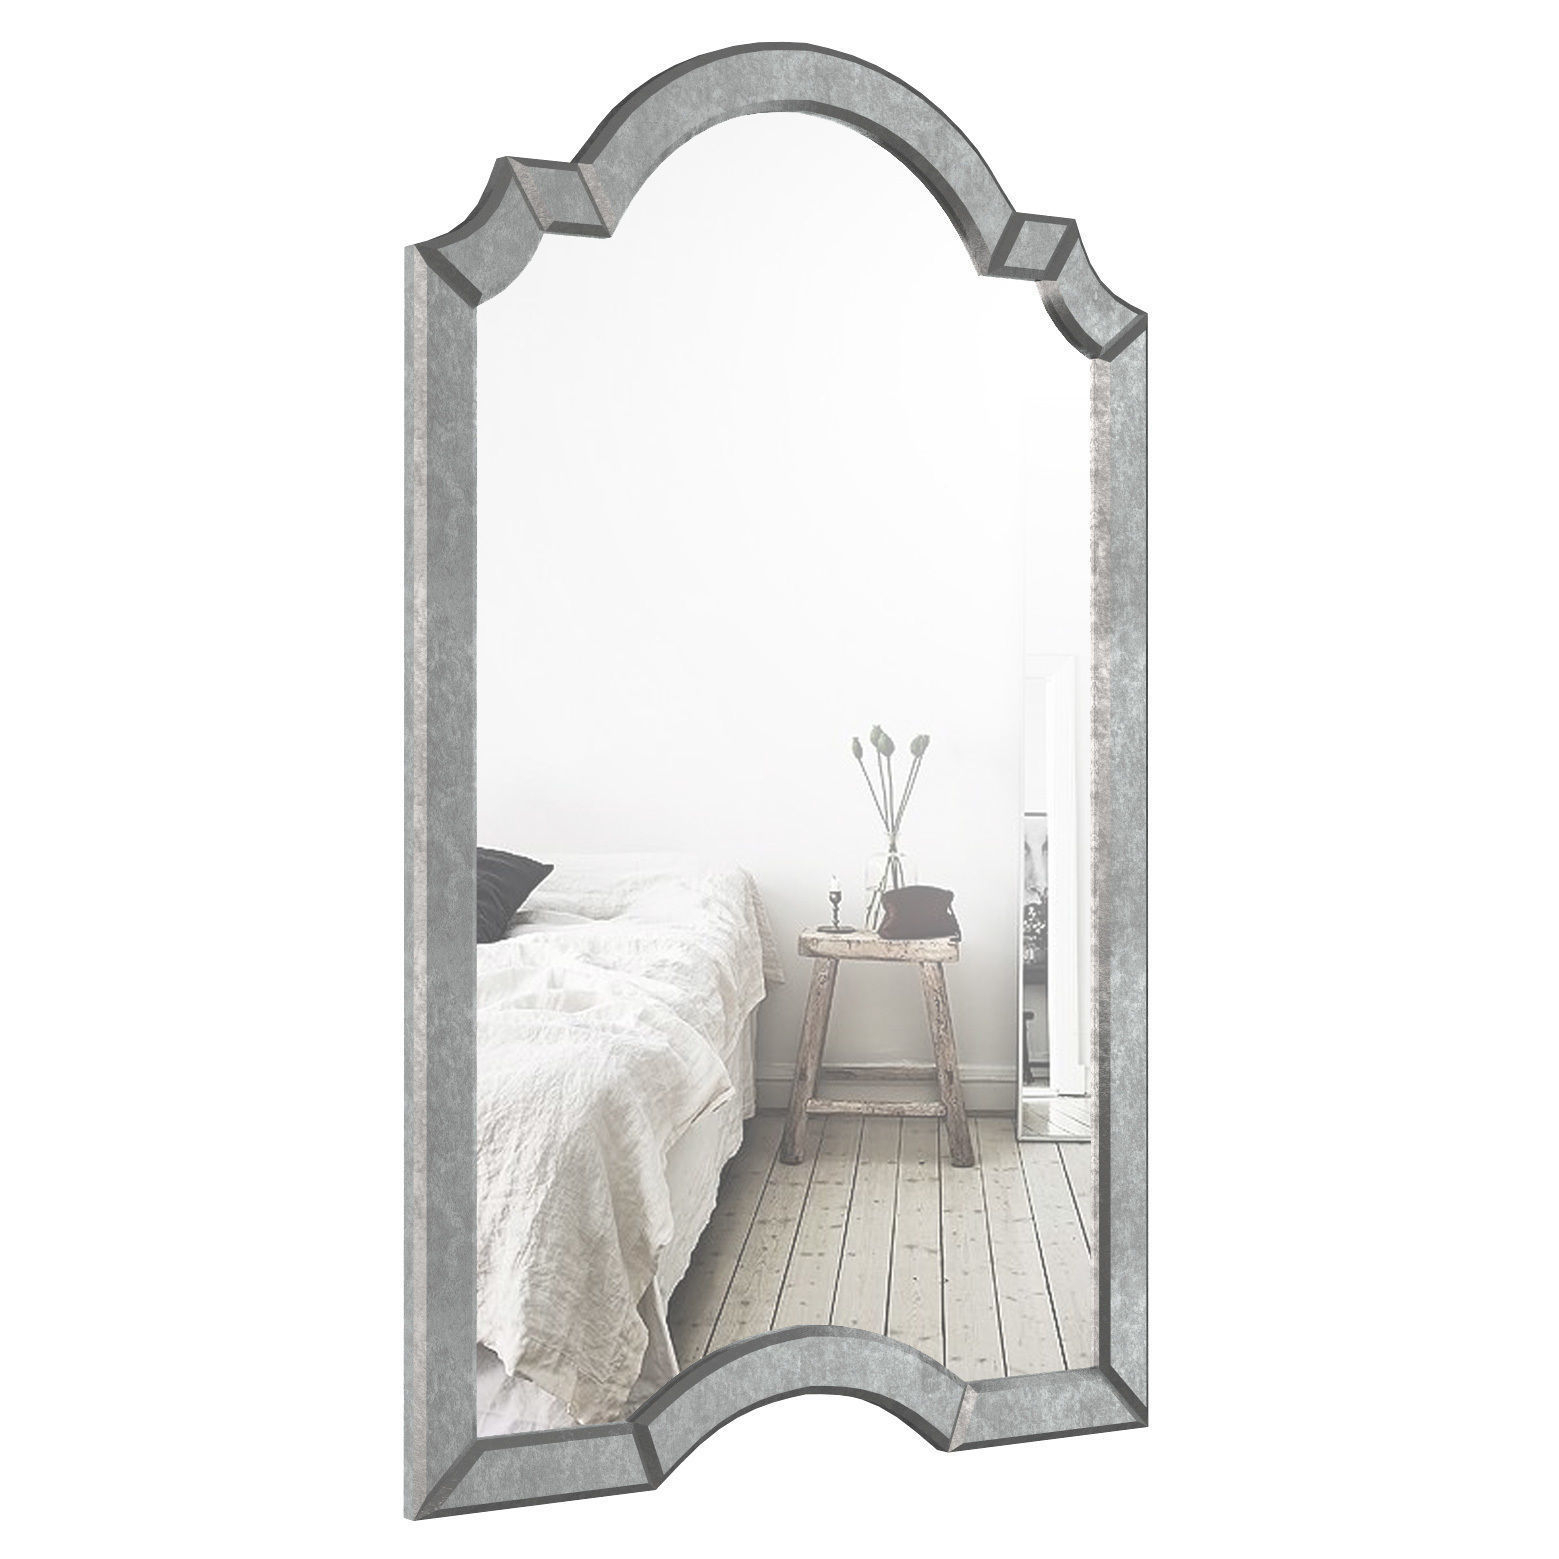 Ekaterina Arch – Crowned Top Wall Mirror Wlao1197 | 3d Model Regarding Ekaterina Arch/crowned Top Wall Mirrors (View 3 of 30)